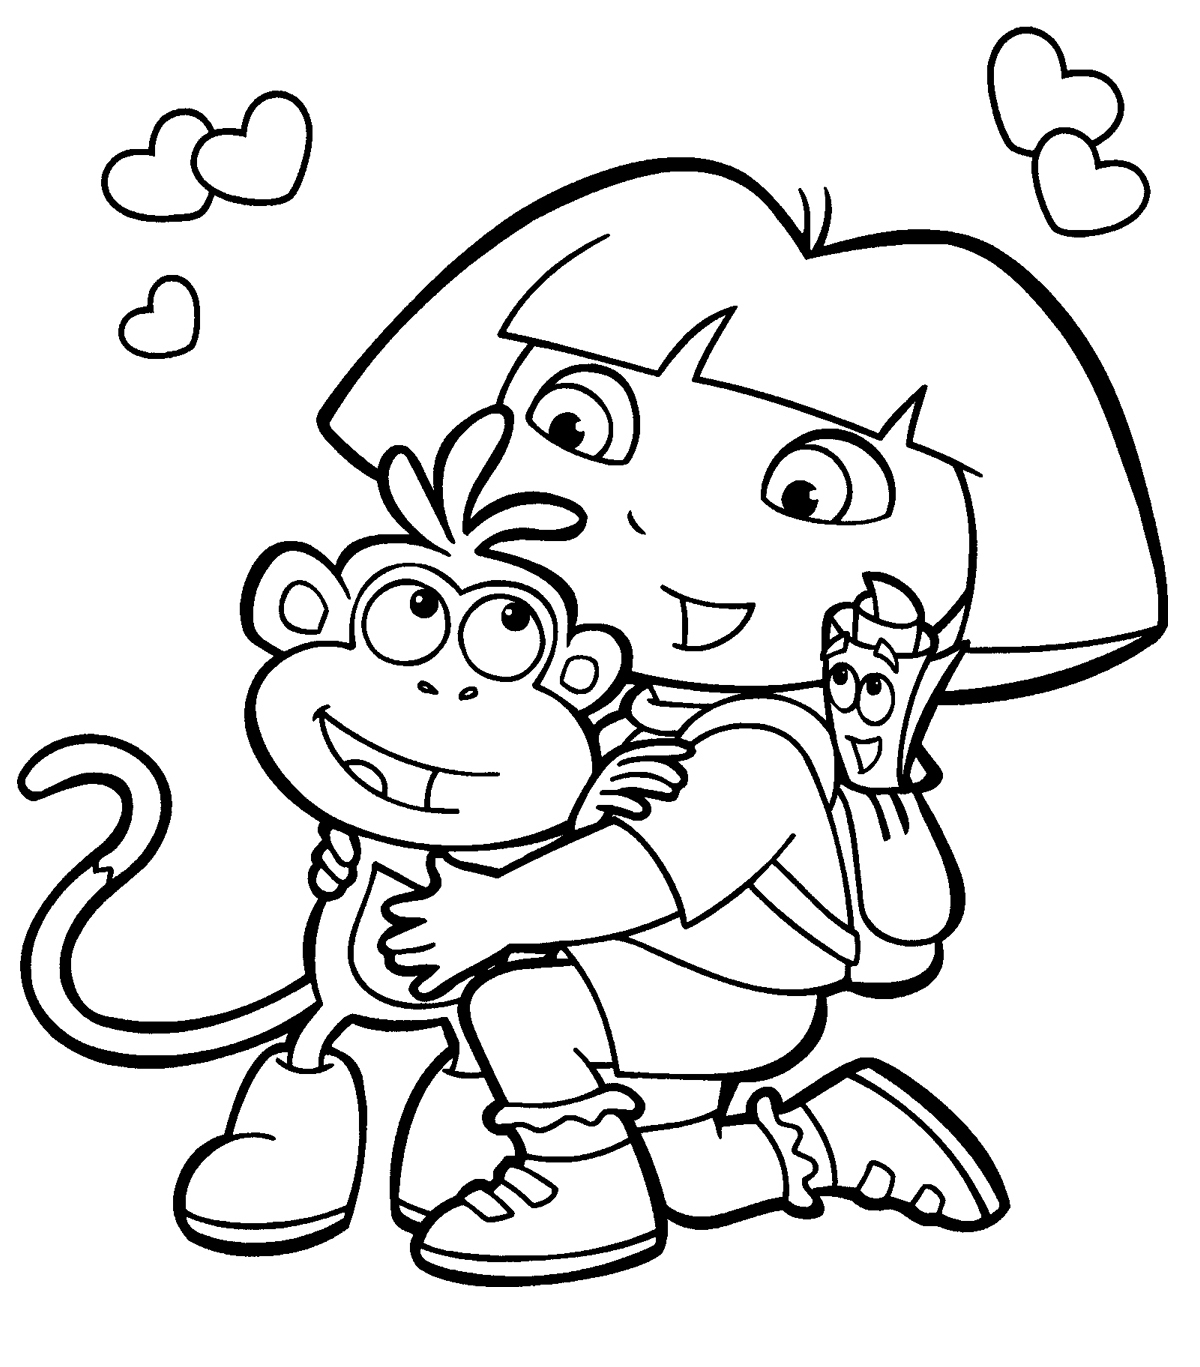 Coloring Pages ~ Free Printable Coloring Sheets For Kids Photo Ideas - Free Printable Color Sheets For Preschool